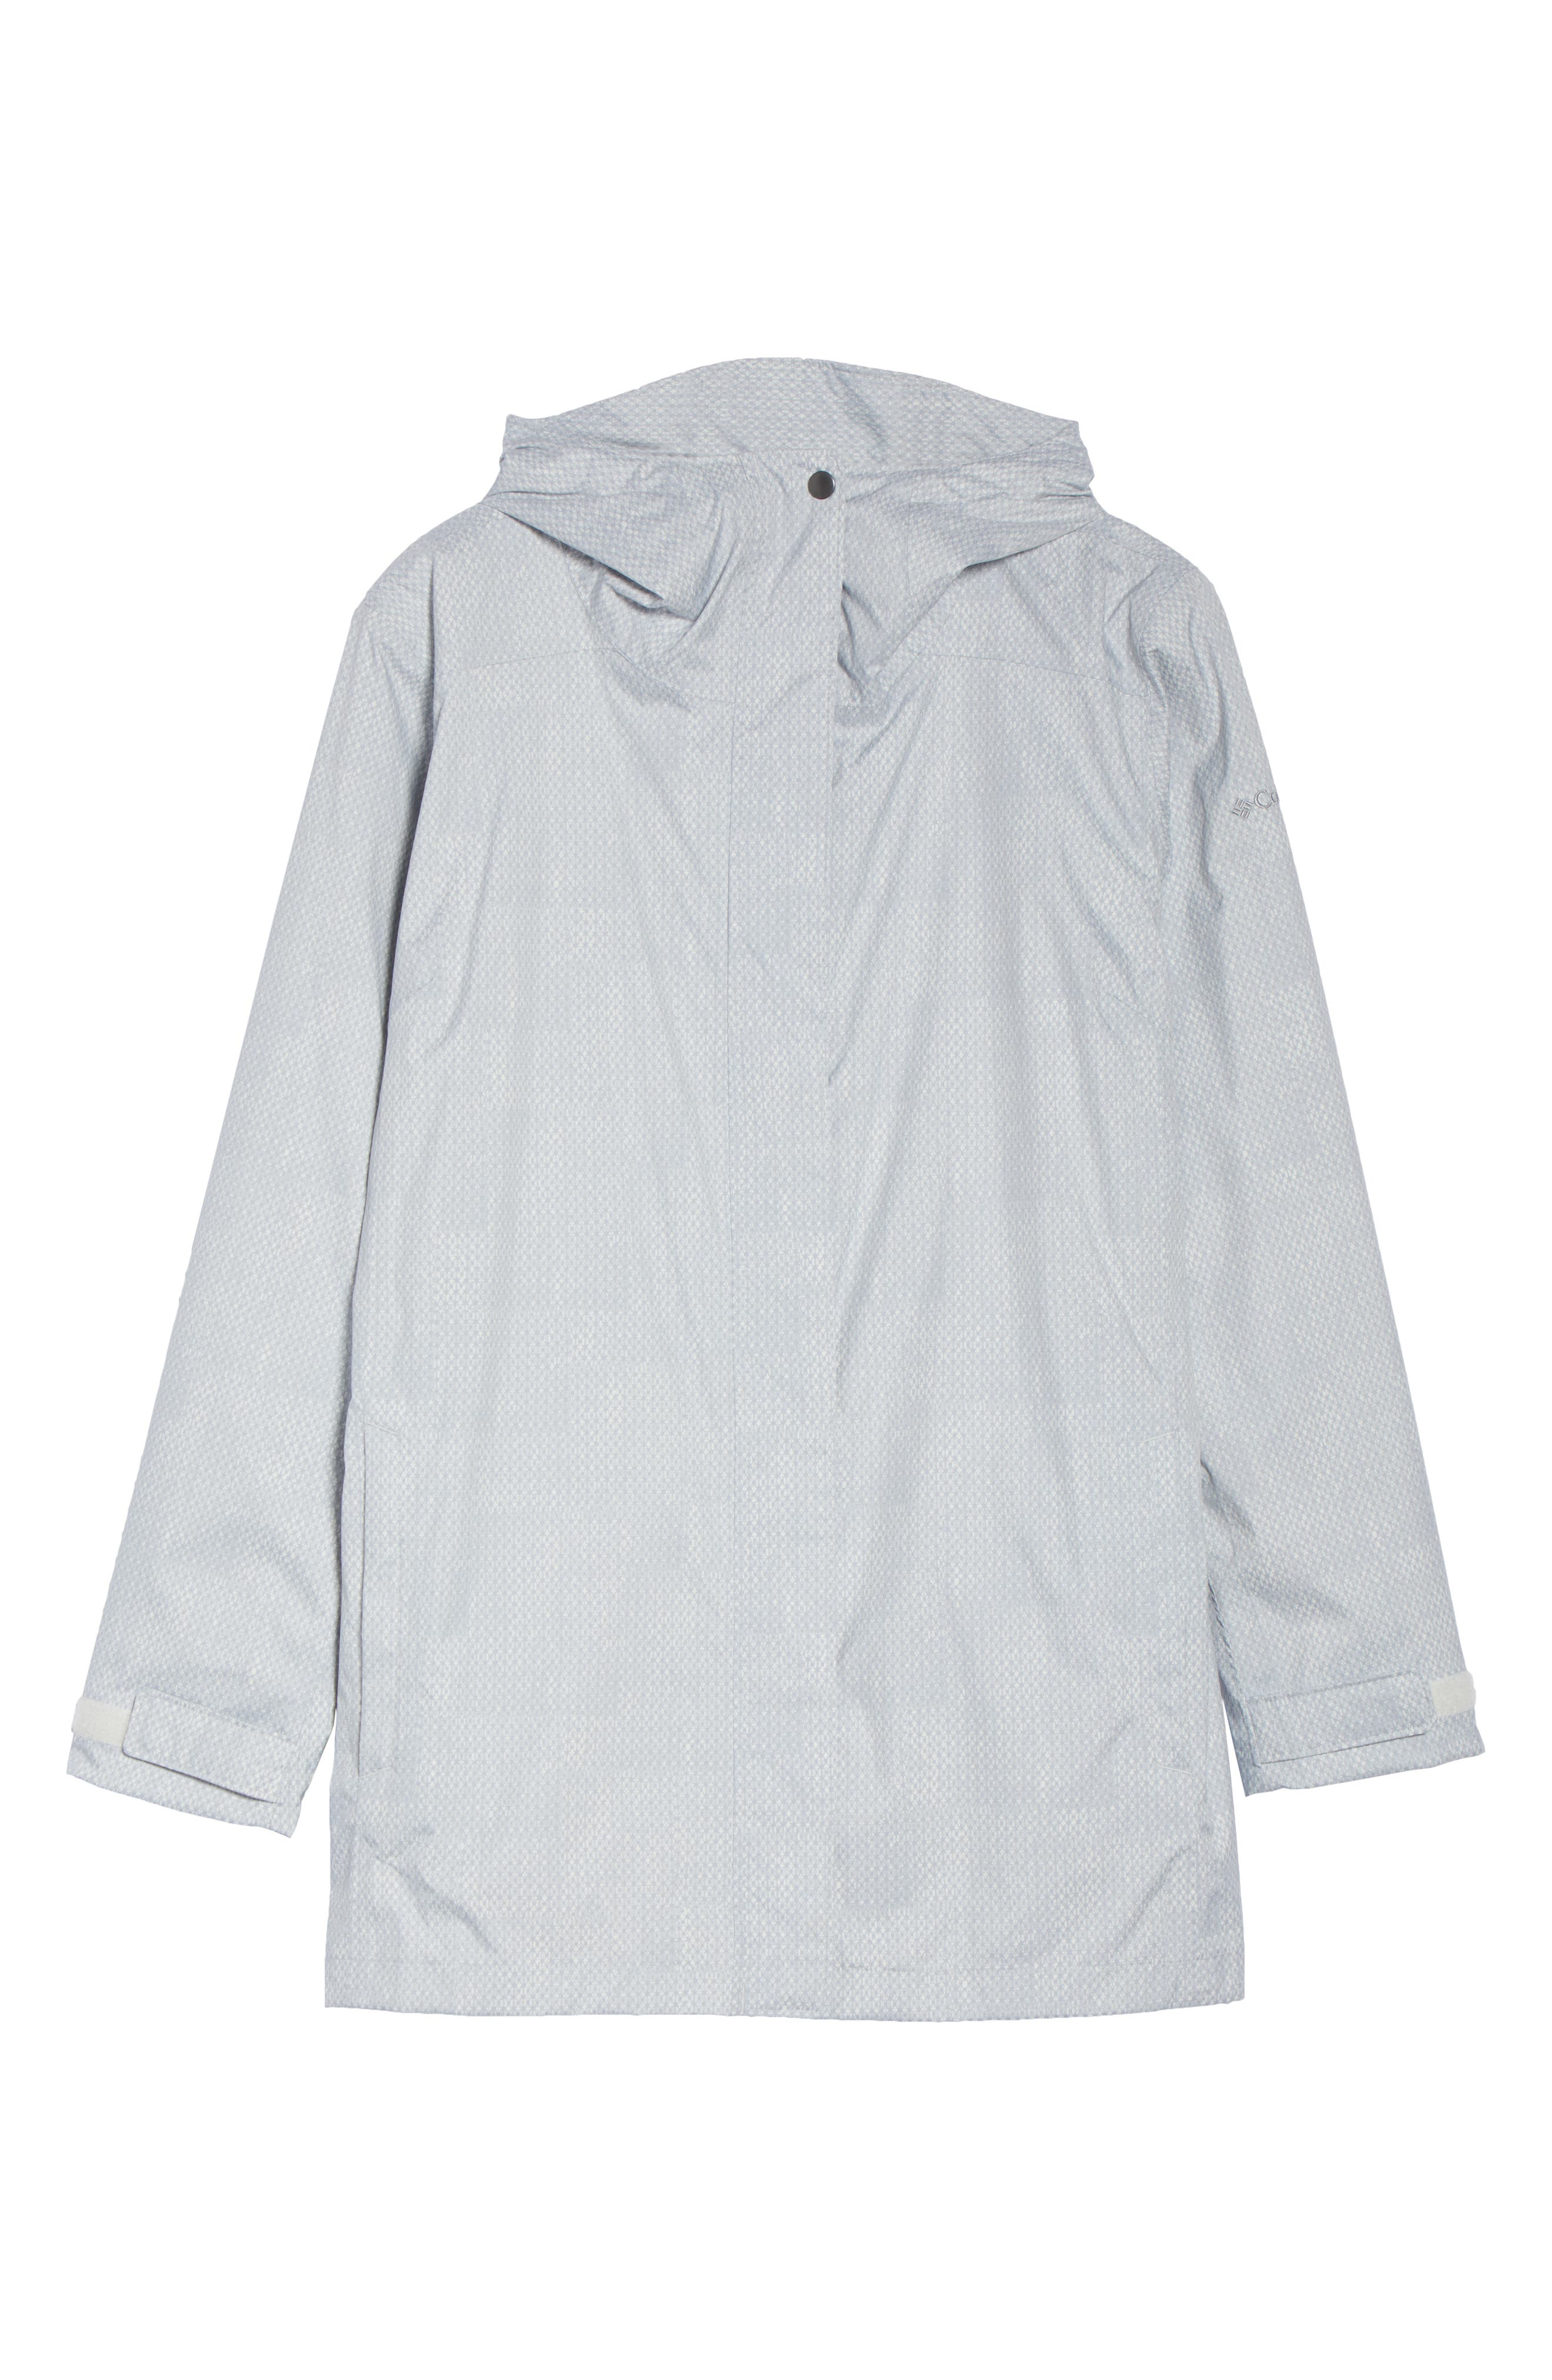 Splash a Little II Waterproof Rain Jacket,                             Alternate thumbnail 6, color,                             050